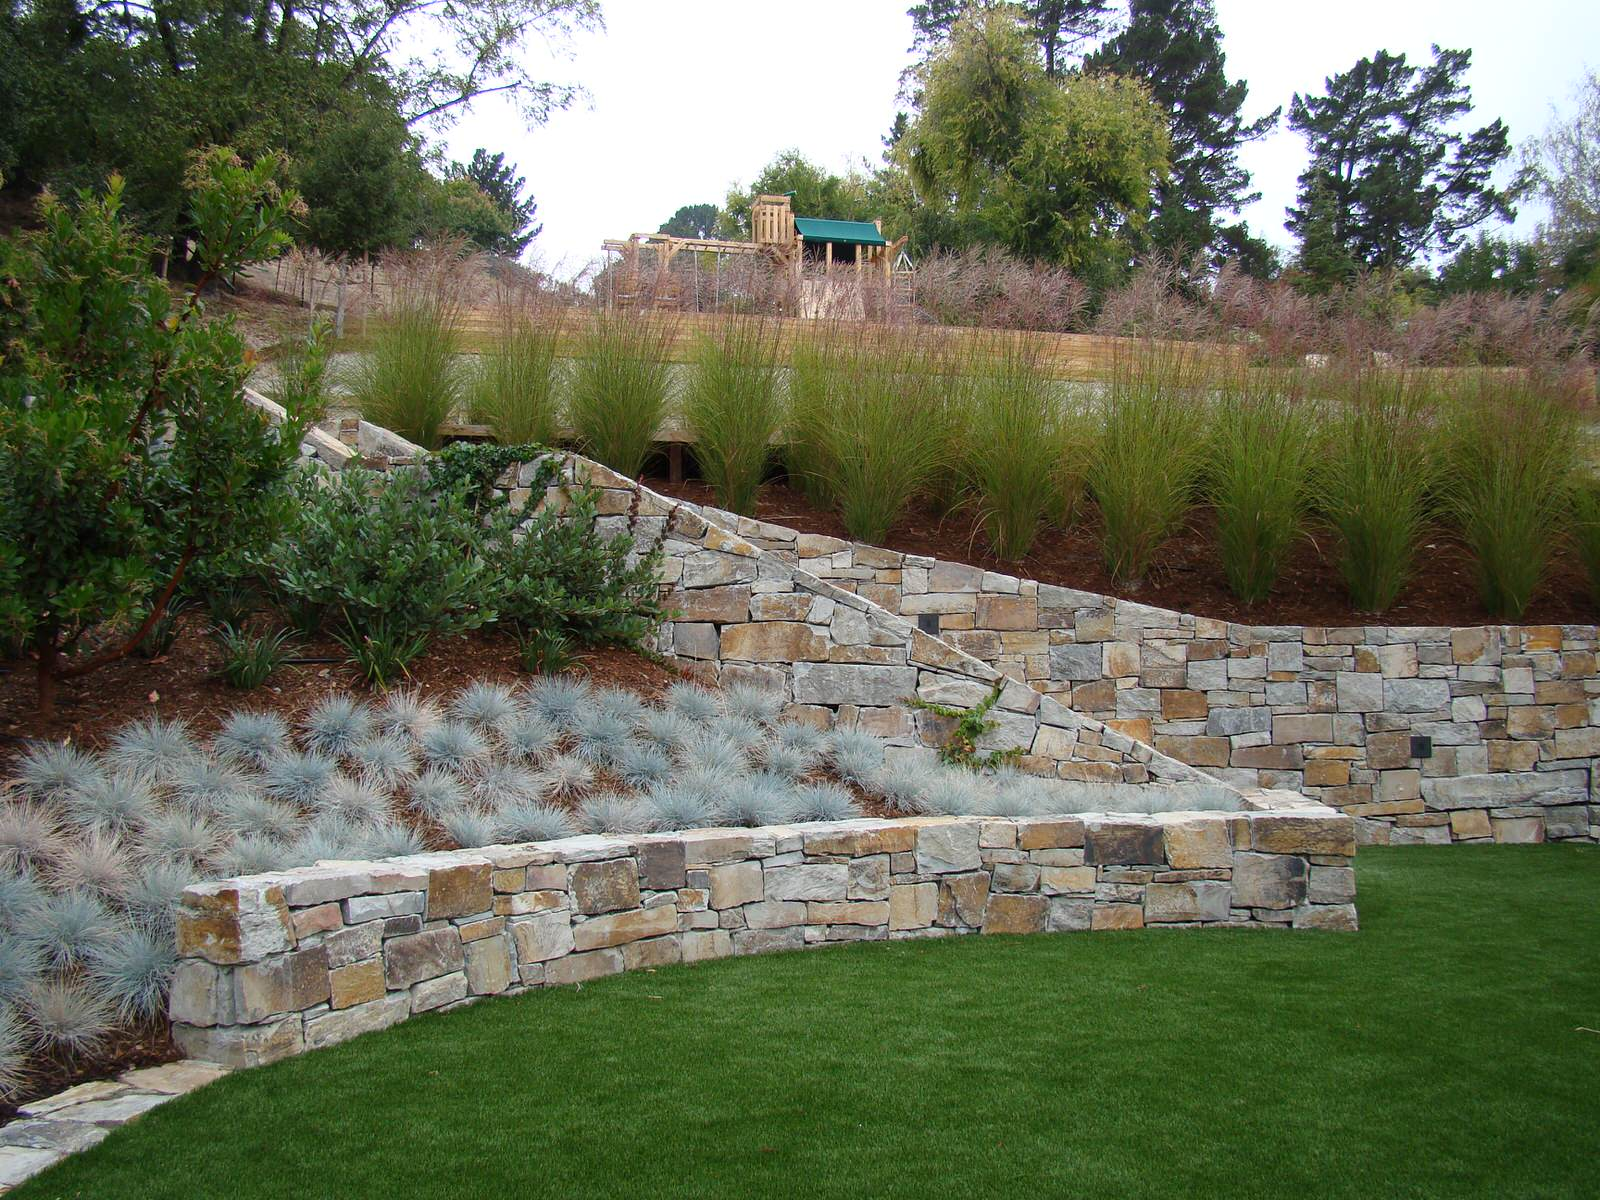 20 Most Inspiring Retaining Wall Ideas for Steep Slopes in a ...